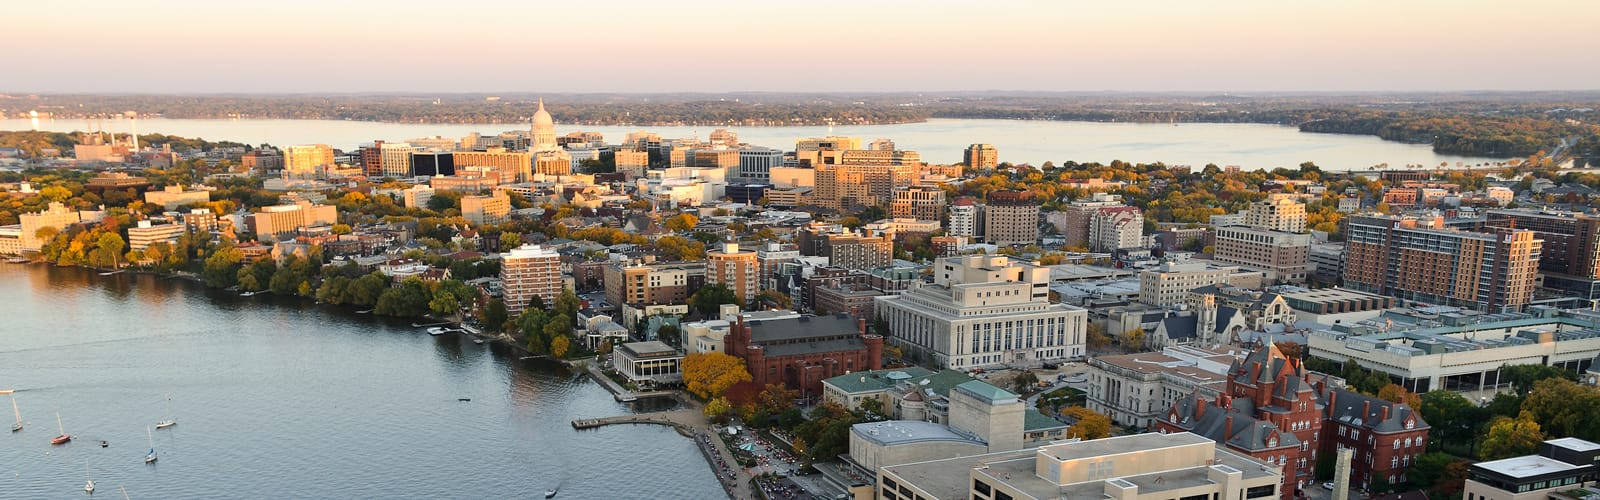 Aerial photo of campus and downtown Madison with Lakes Mendota and Monona